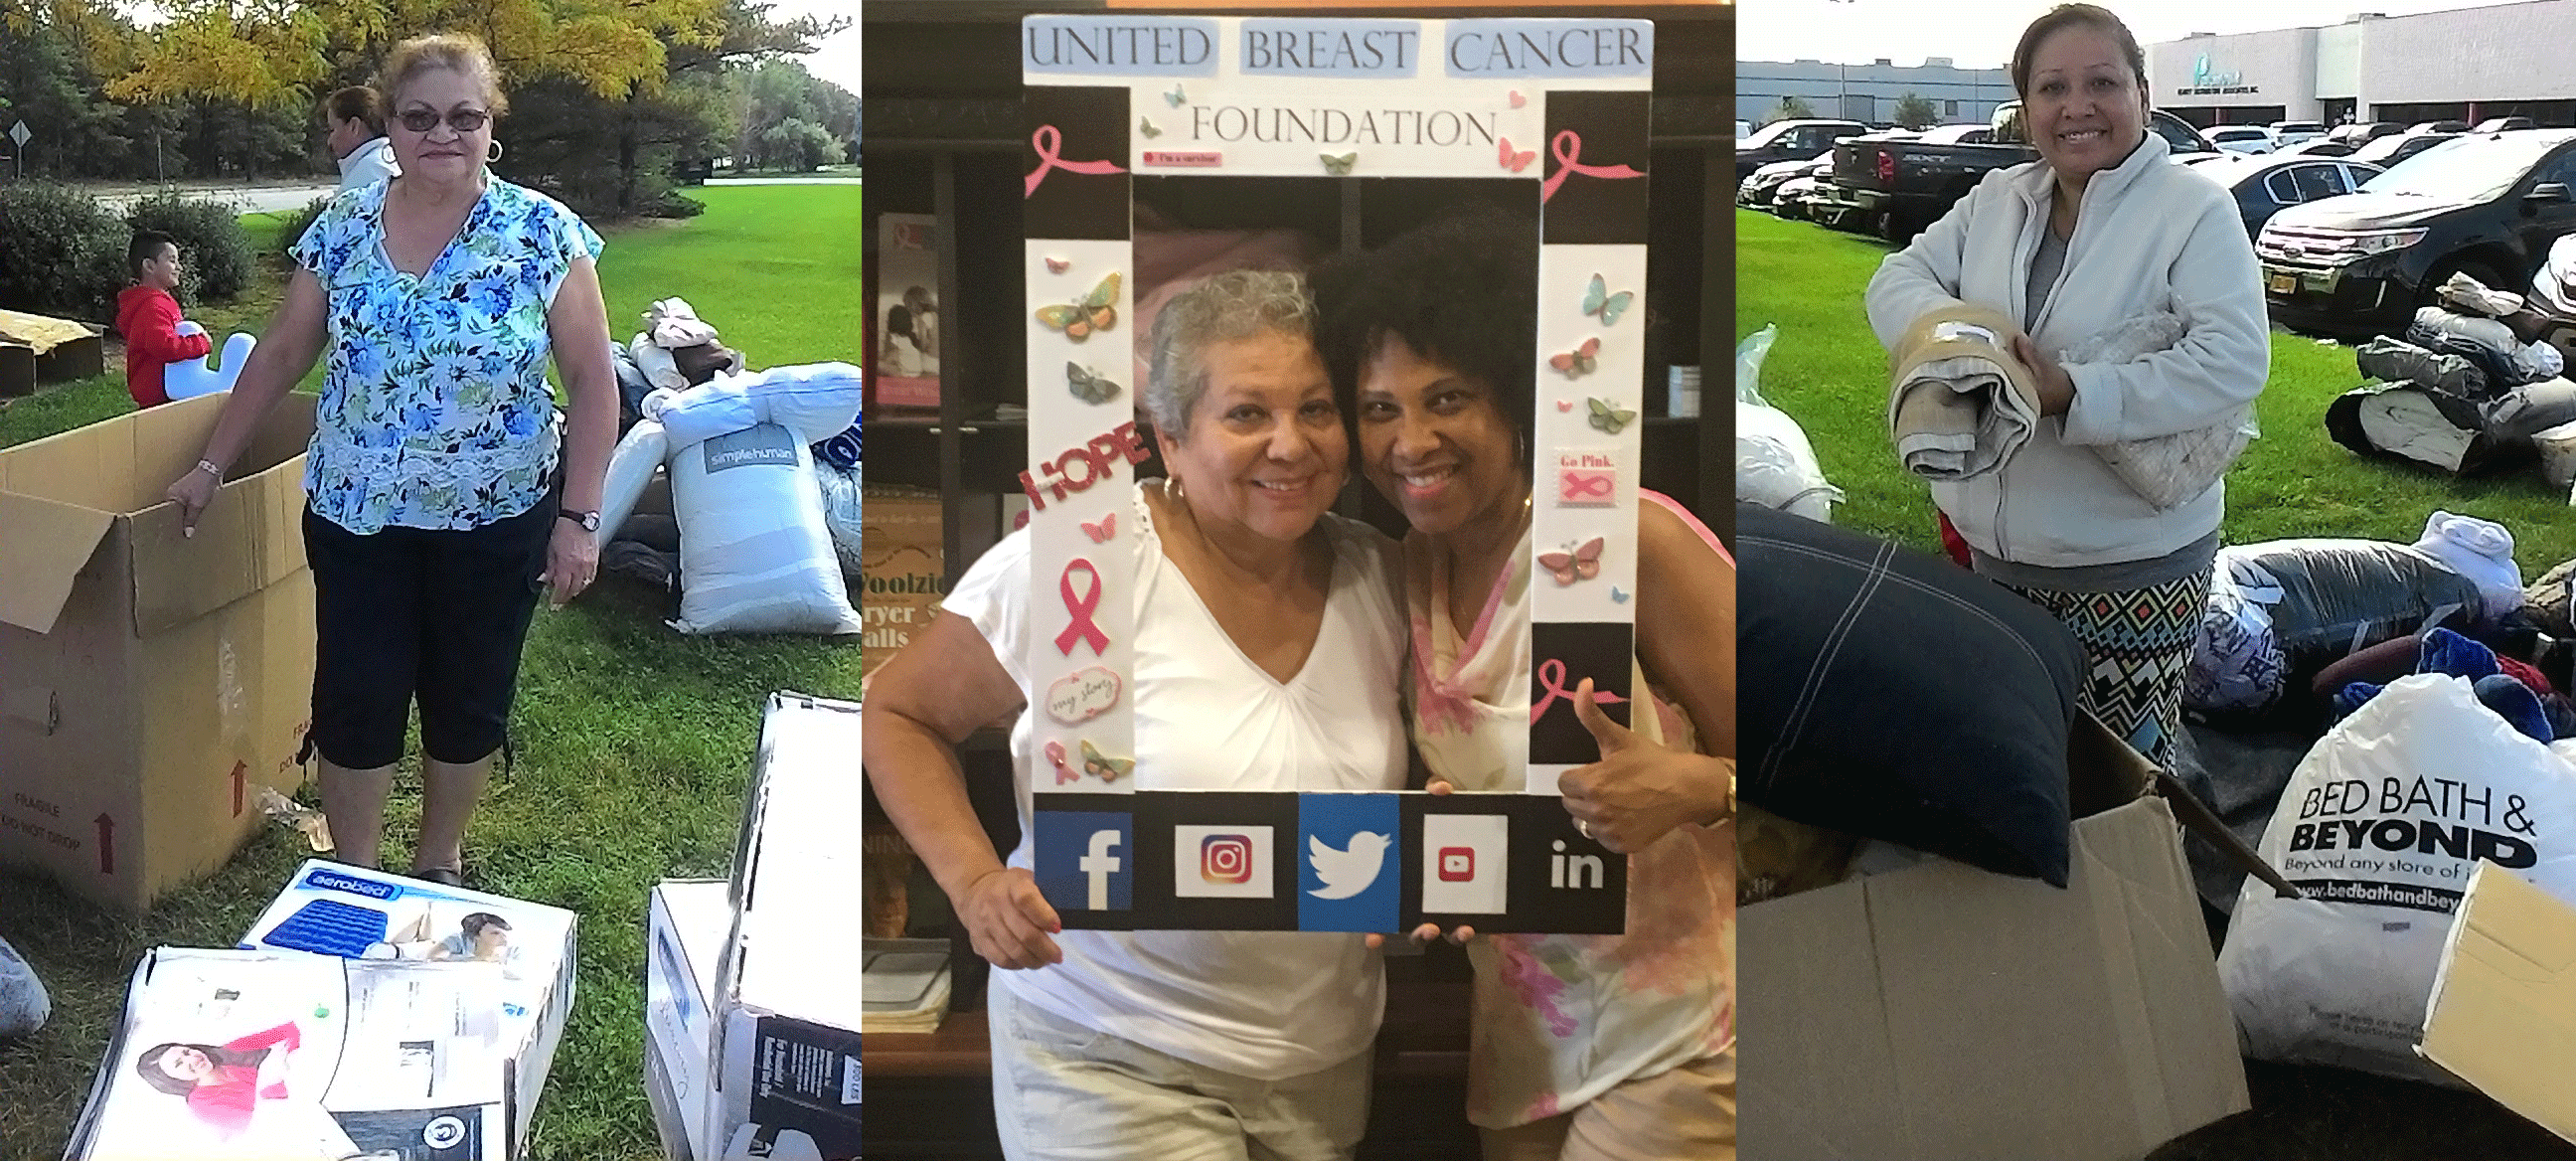 Breast Cancer Patients are Treated to New Home Goods